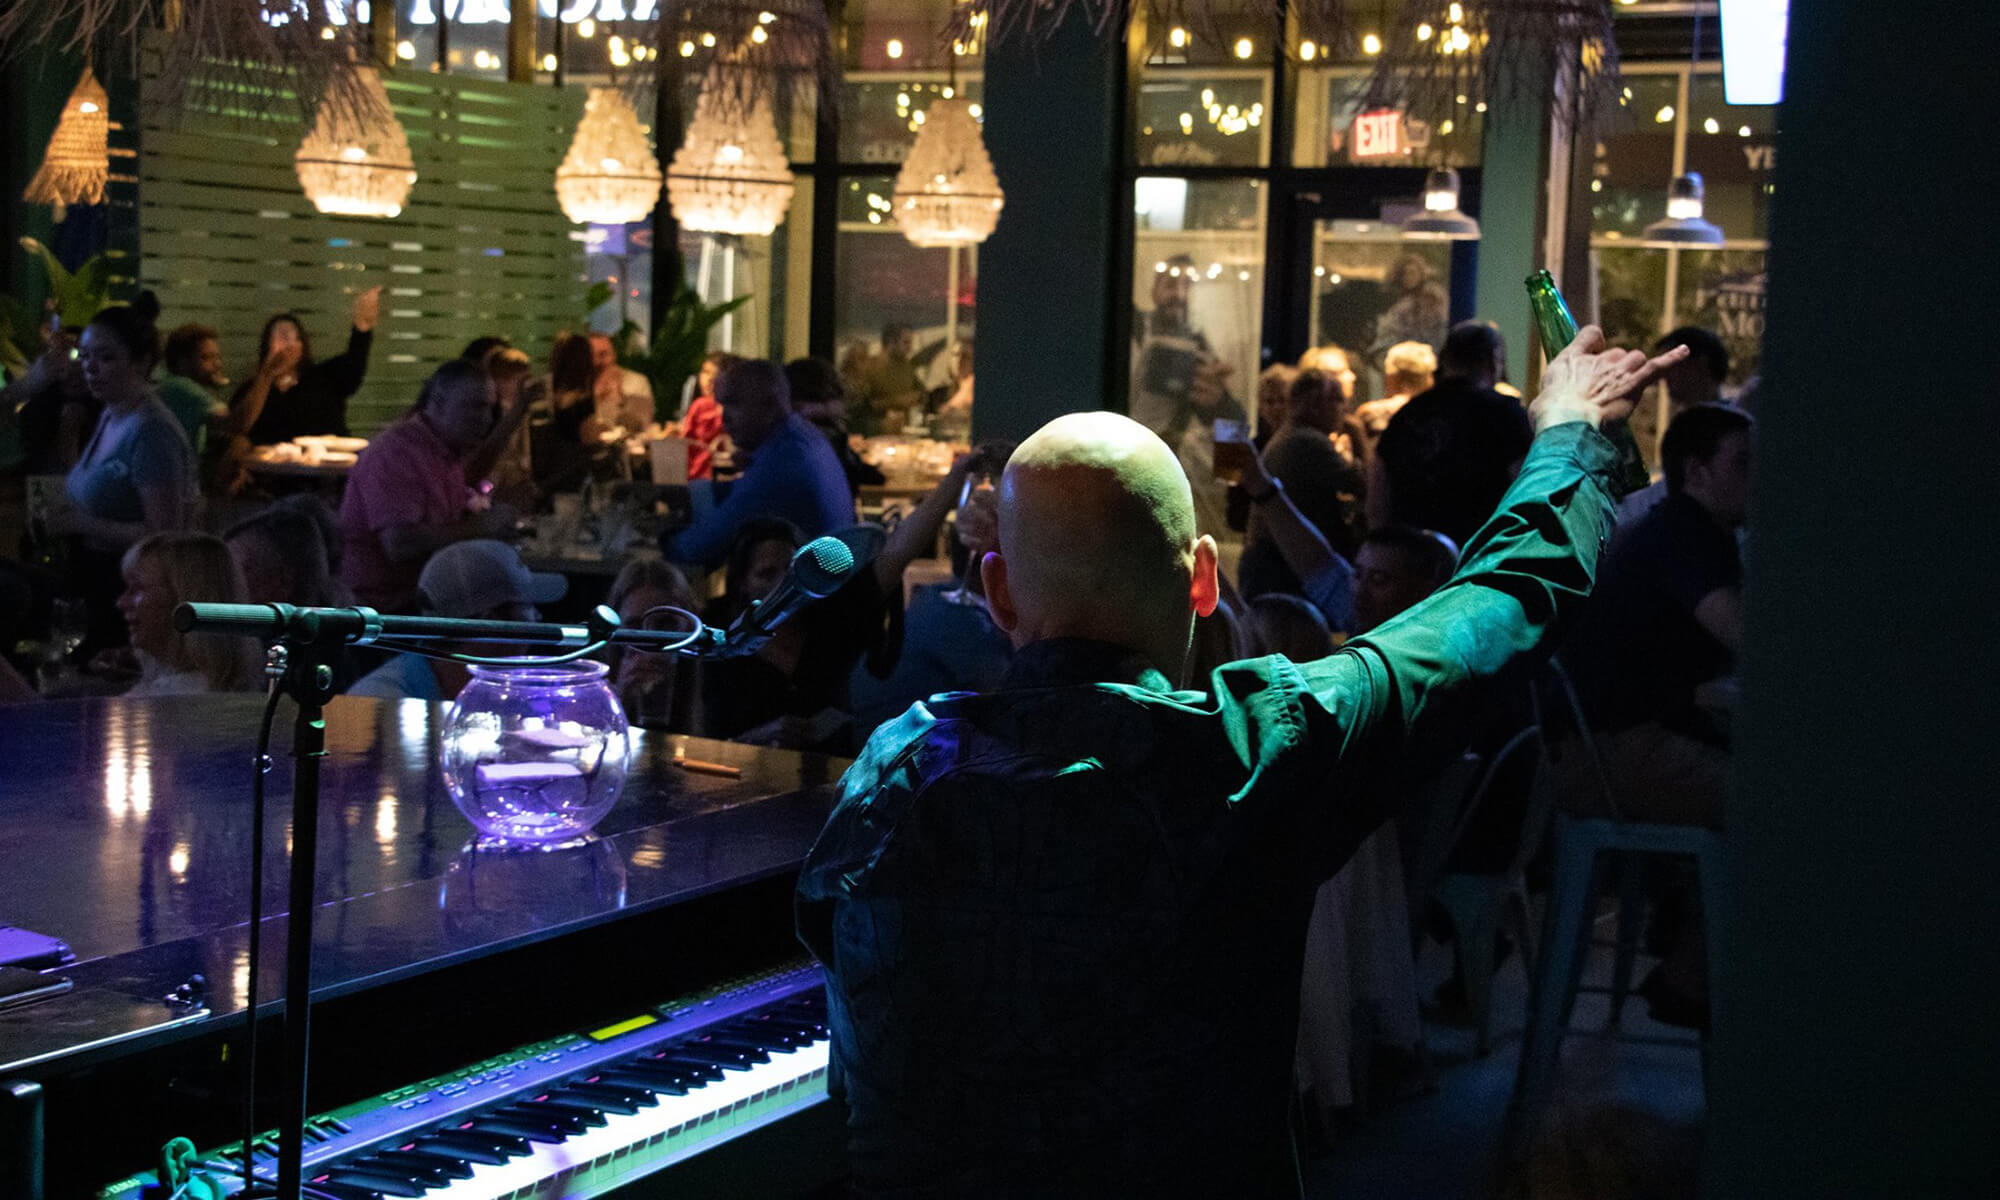 The Keys Piano Bar and Grill